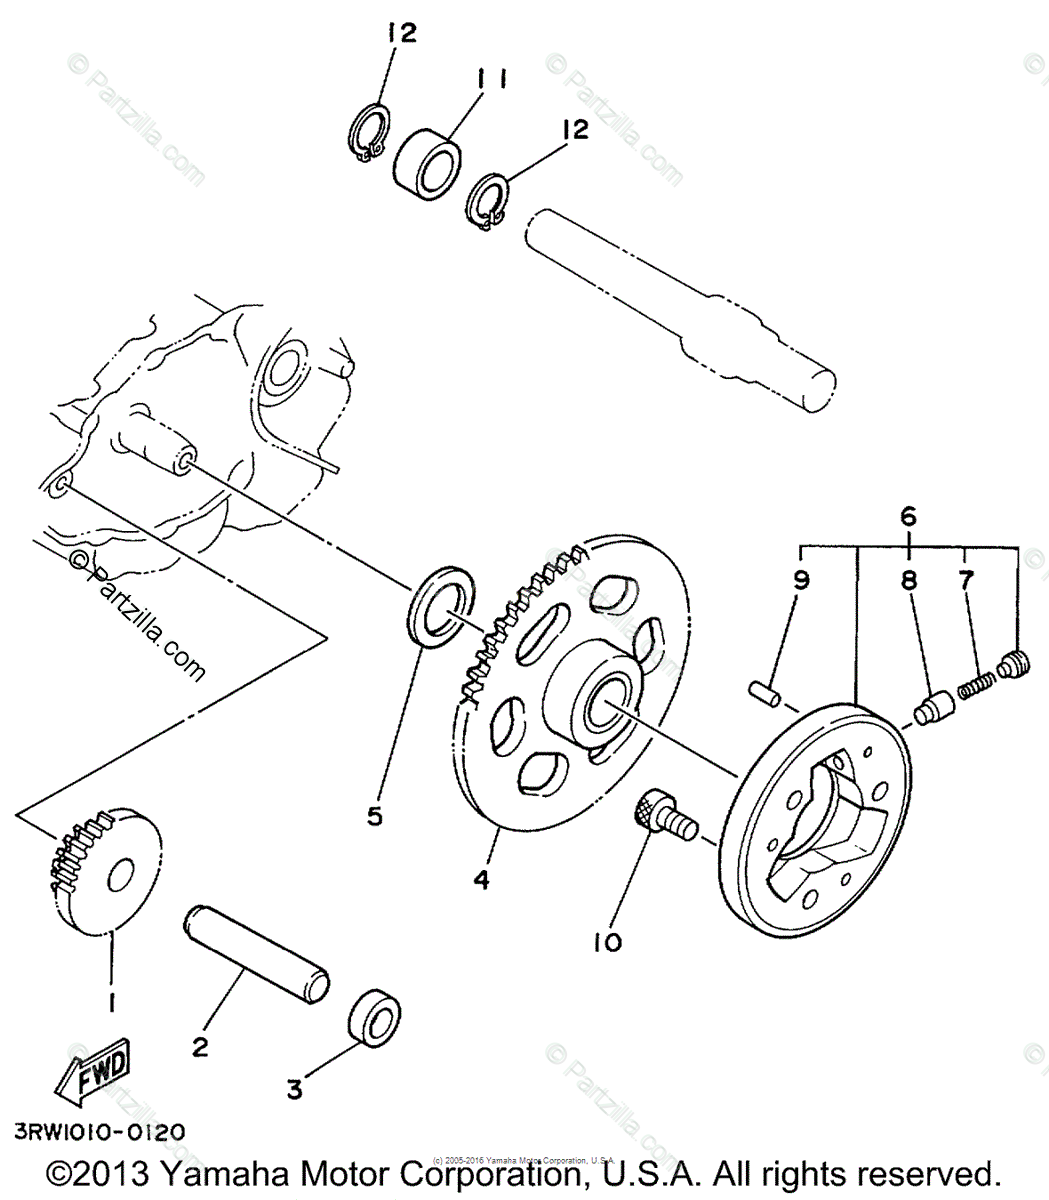 Yamaha Motorcycle 1999 OEM Parts Diagram for Starter